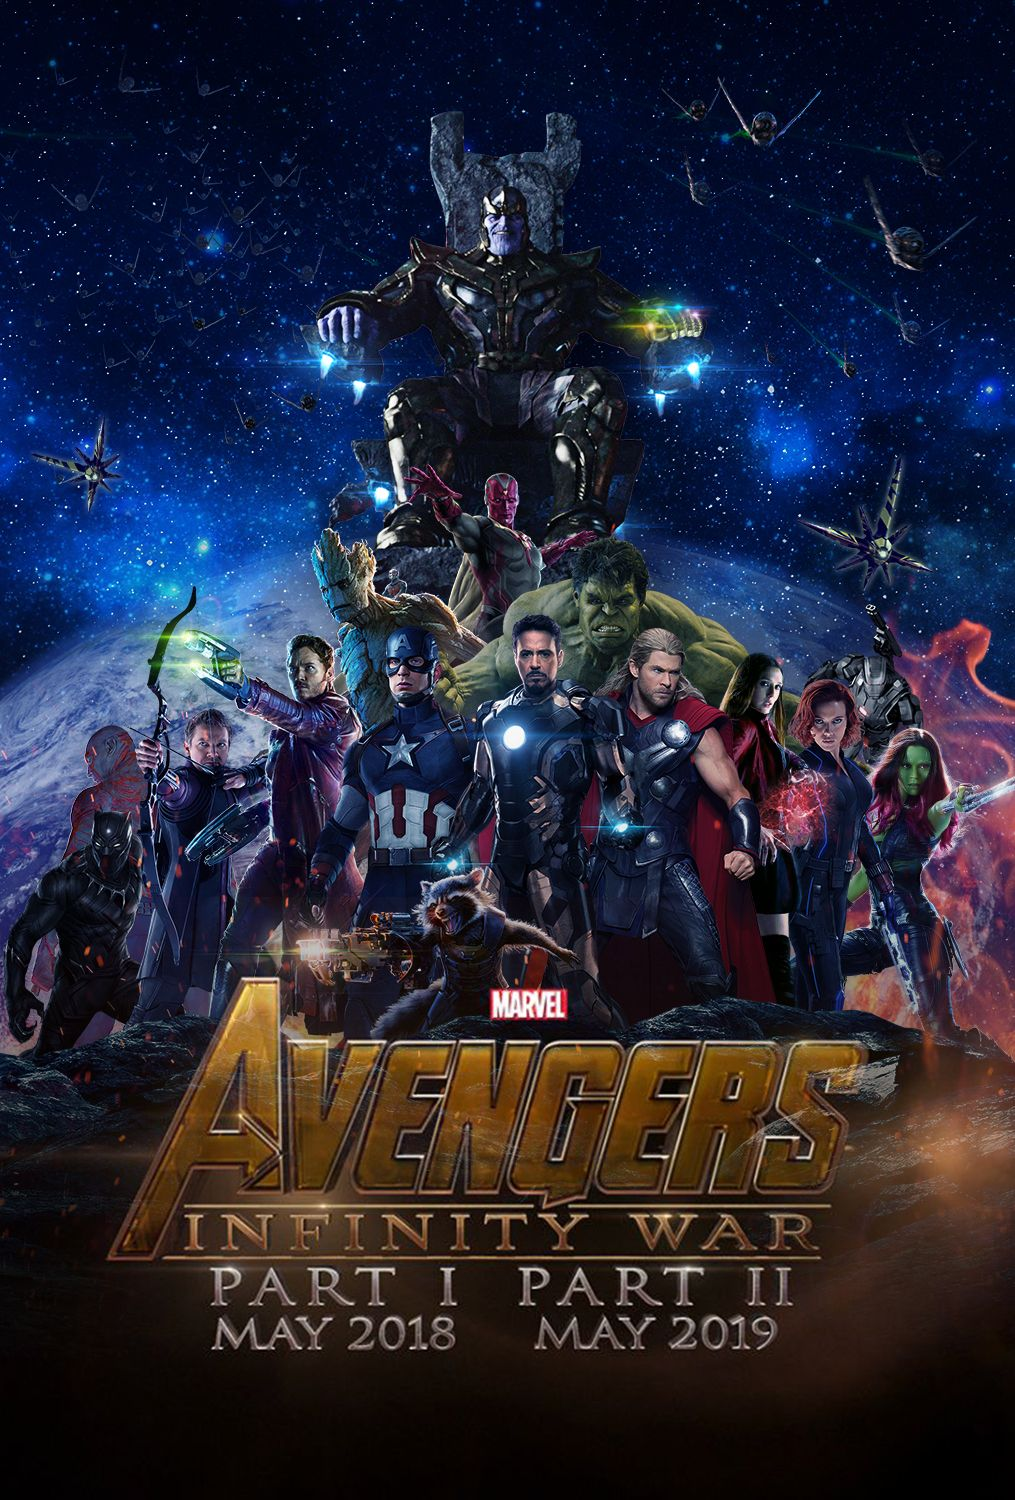 Wip Avengers Infinity War Poster By Touchboyj Hero Deviantart Com On Deviantart I Can T Wait To See This My Heart Explode Avengers Movies Avengers Marvel